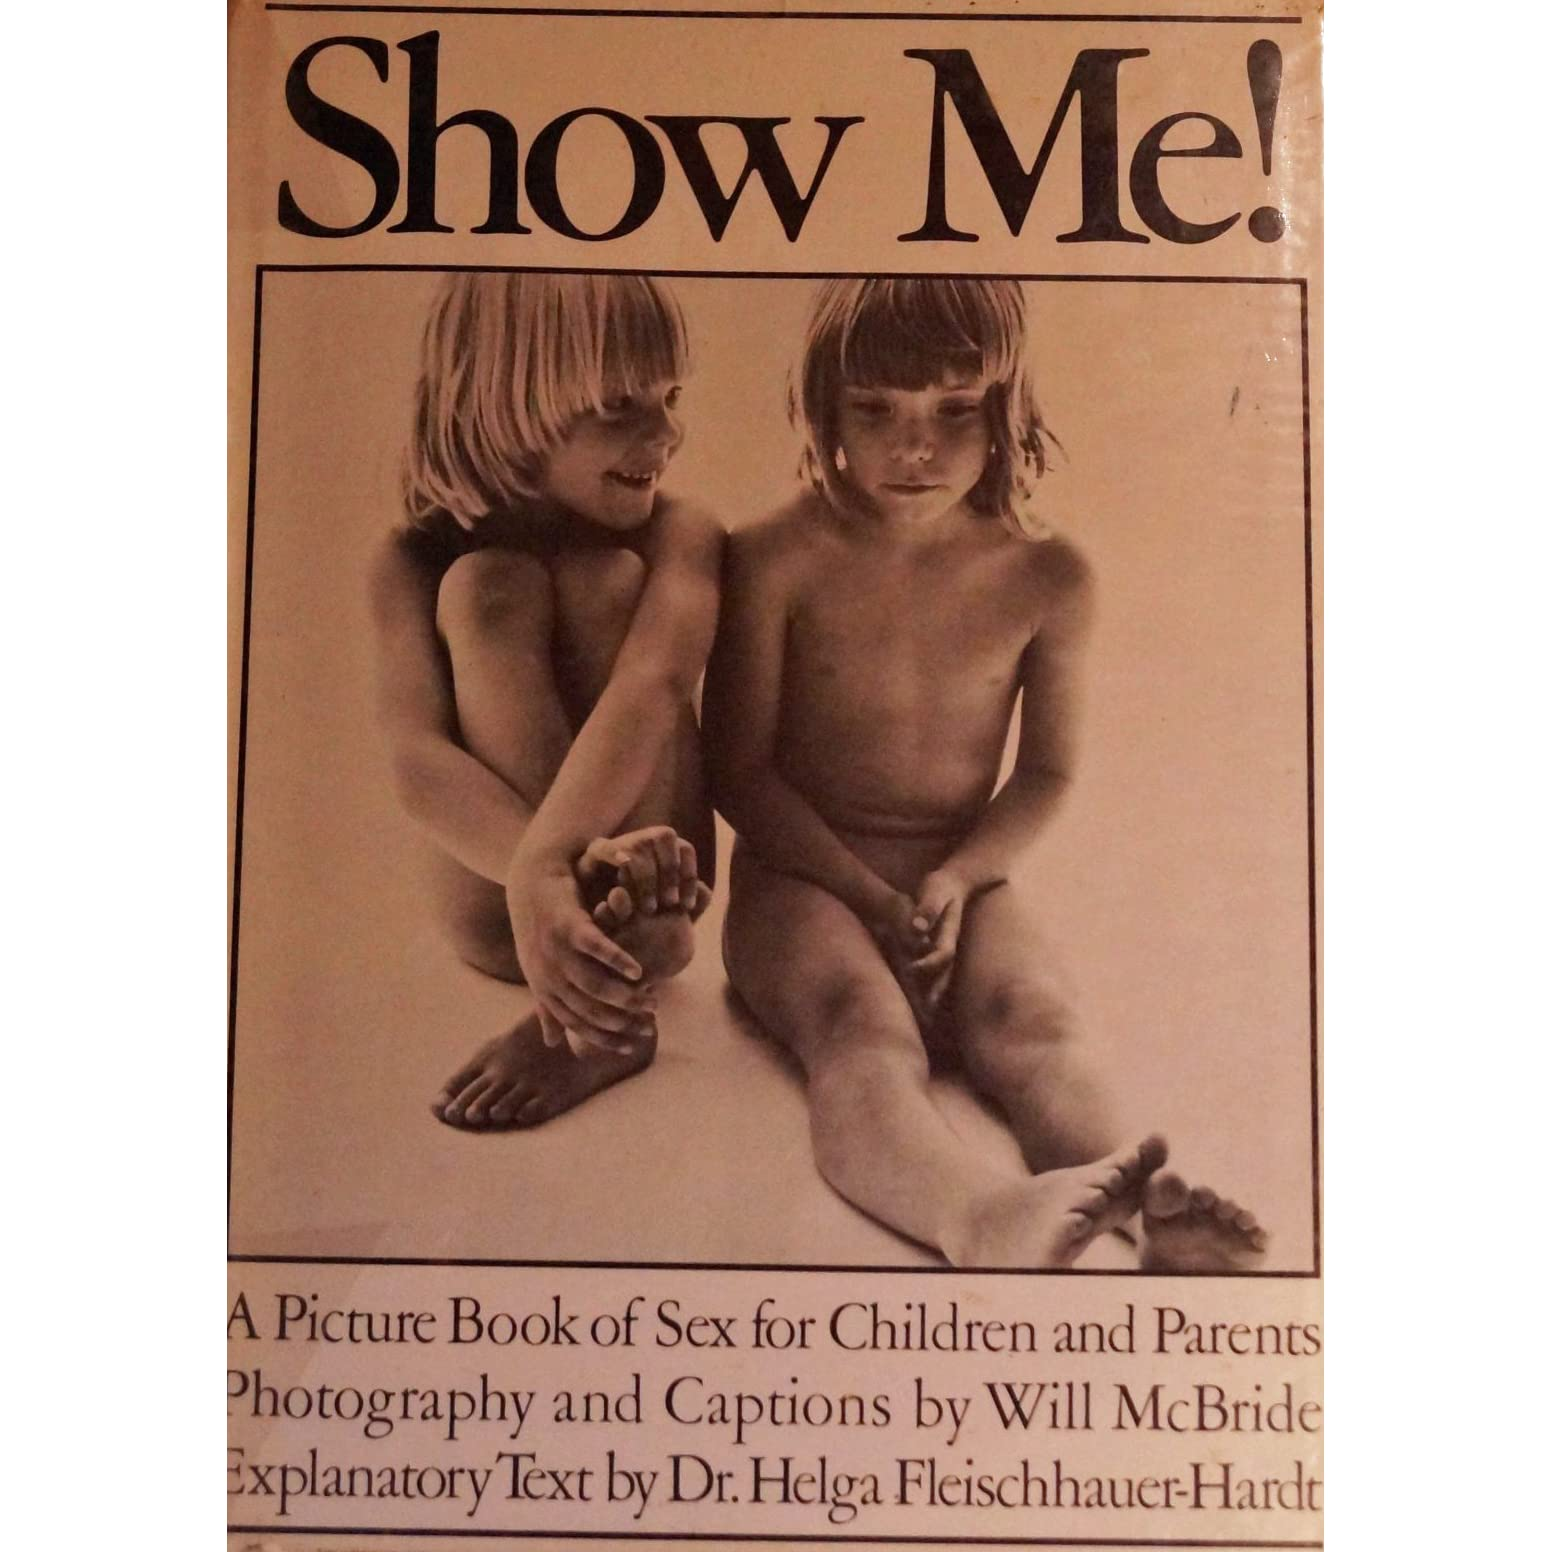 Show Me A Picture Book For Children And Parents by Will McBride